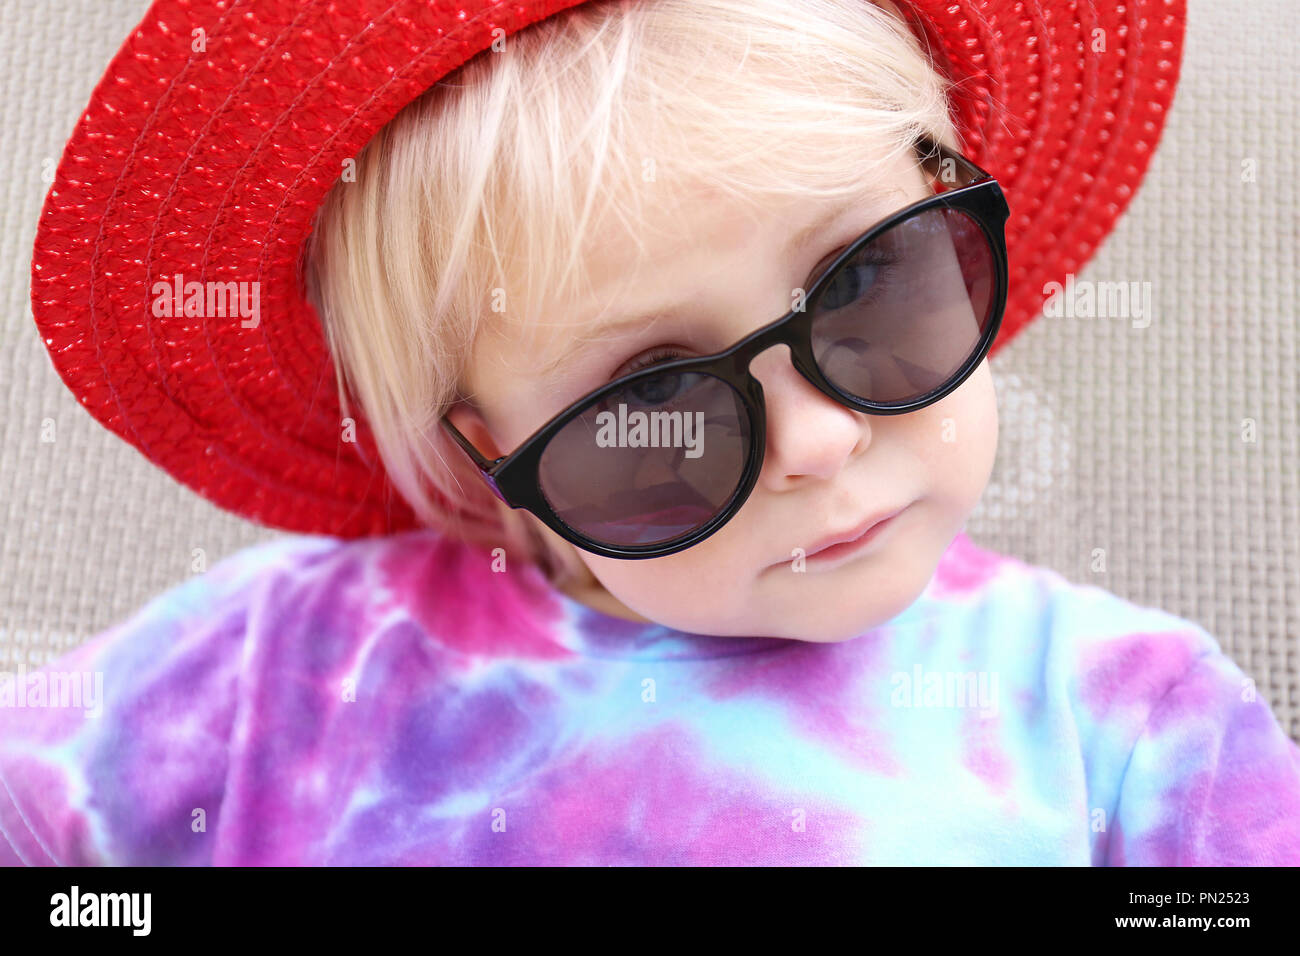 029e20af0a9a A cute little 2 year old toddler girl is sunbathing outside, wearing a red  summer